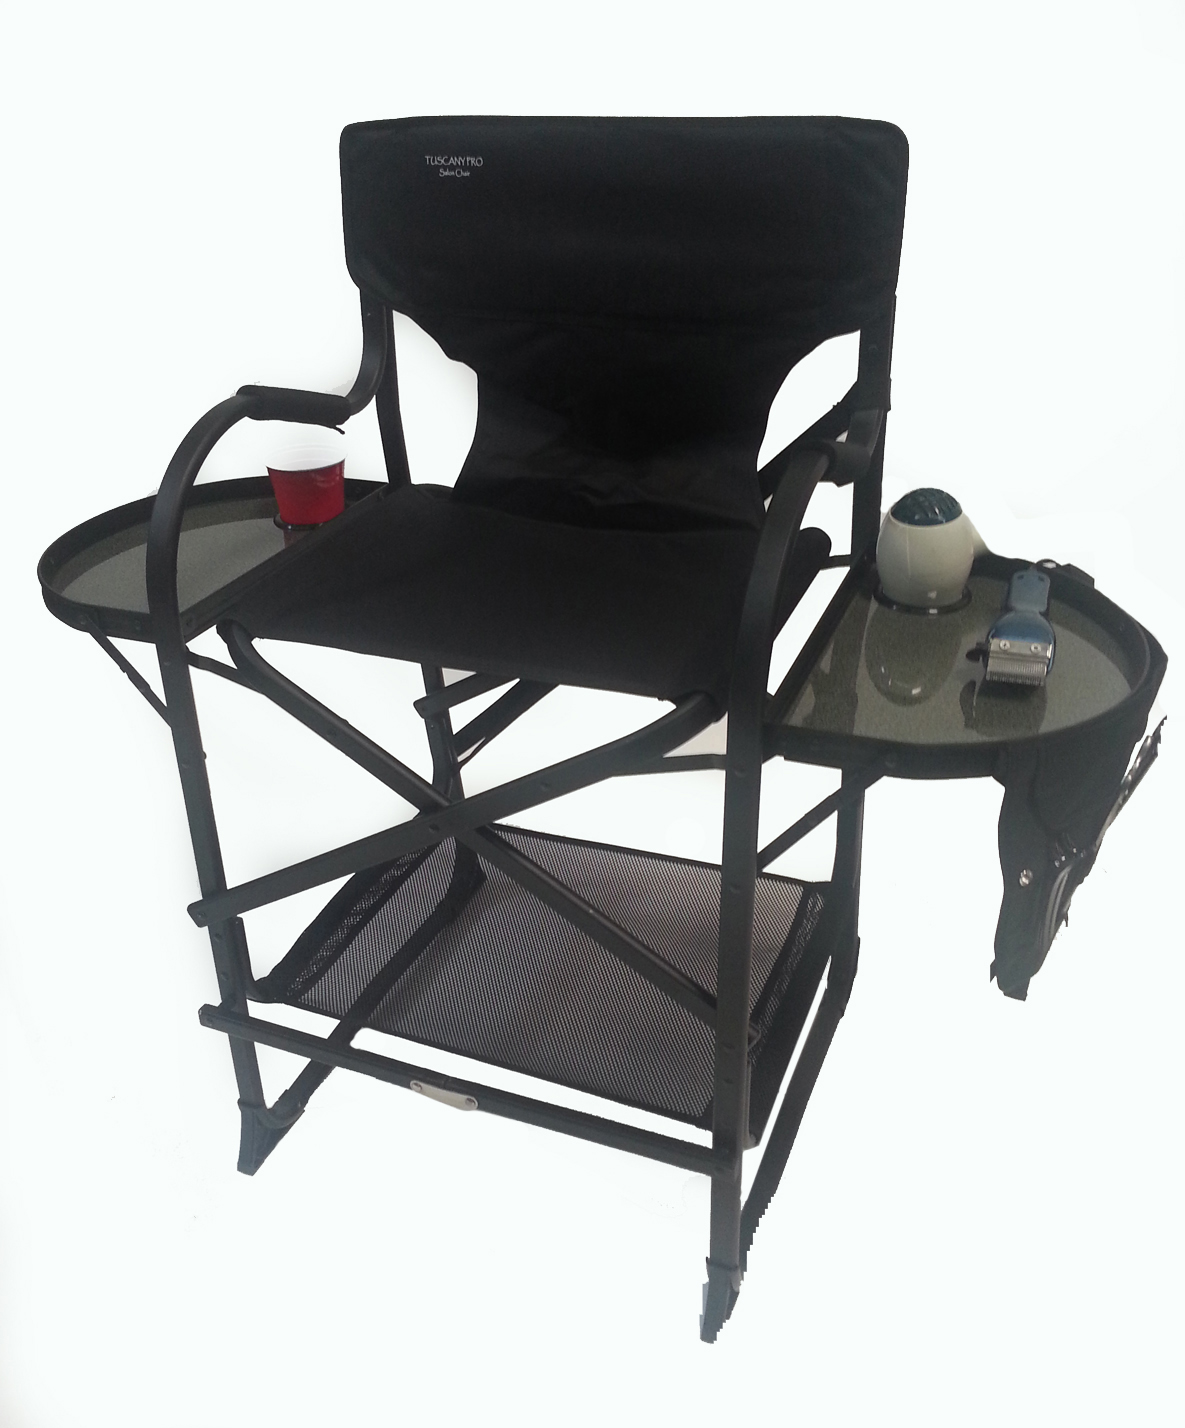 make up chair office bucket chairs mid size salon makeup by pacific imports